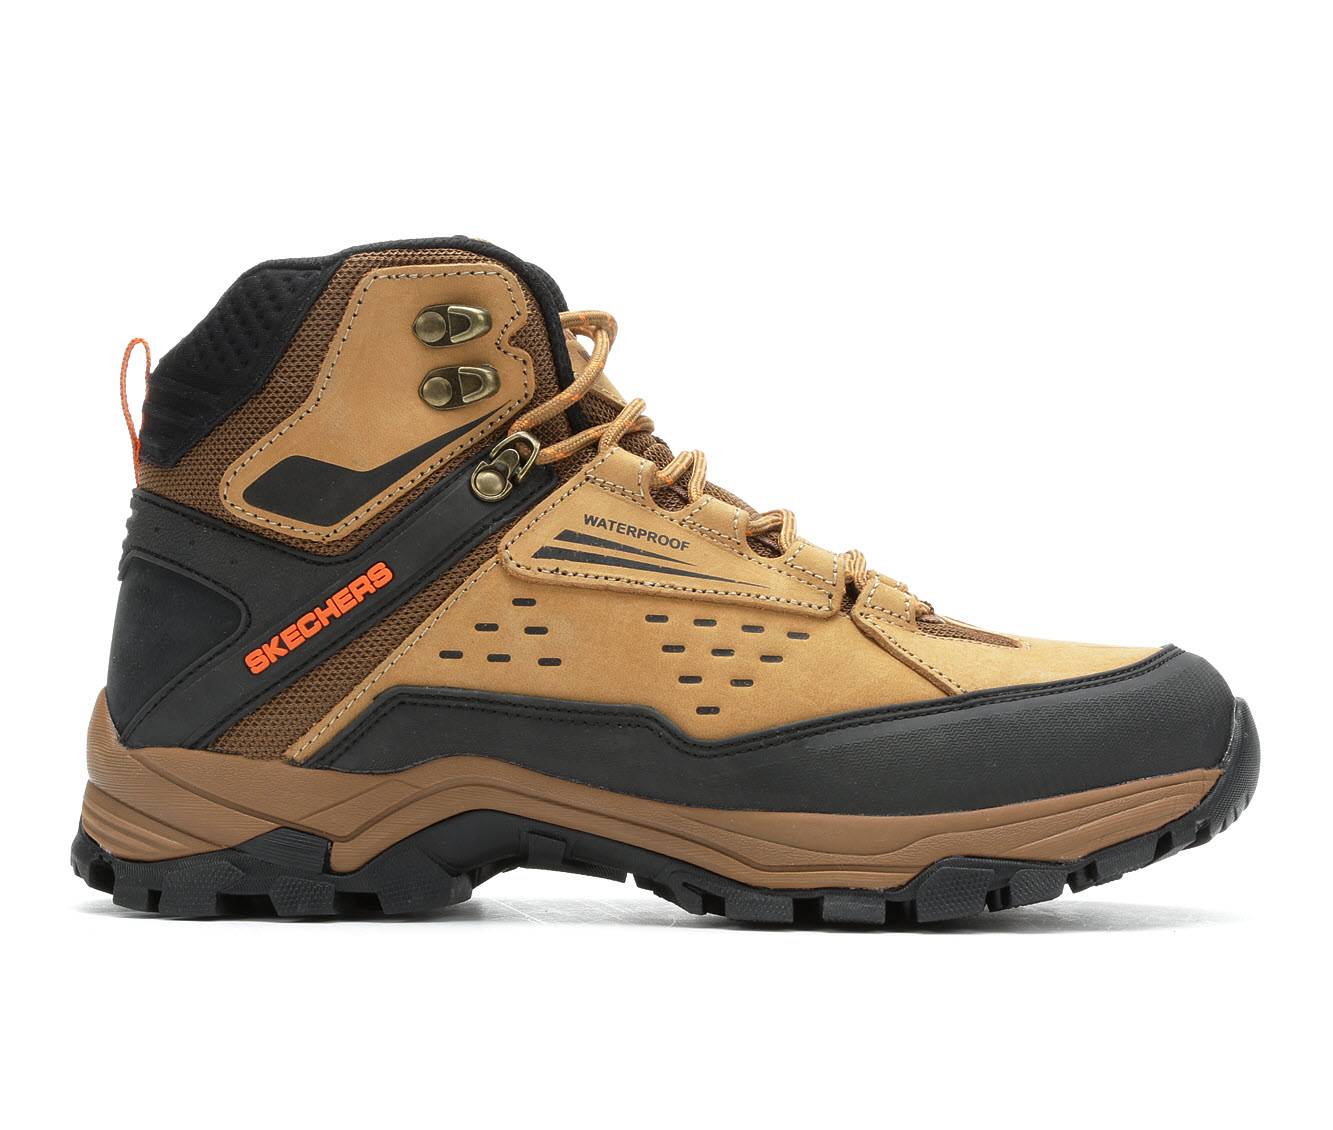 Skechers Norwood 65755 Men's Boots (Beige Leather)